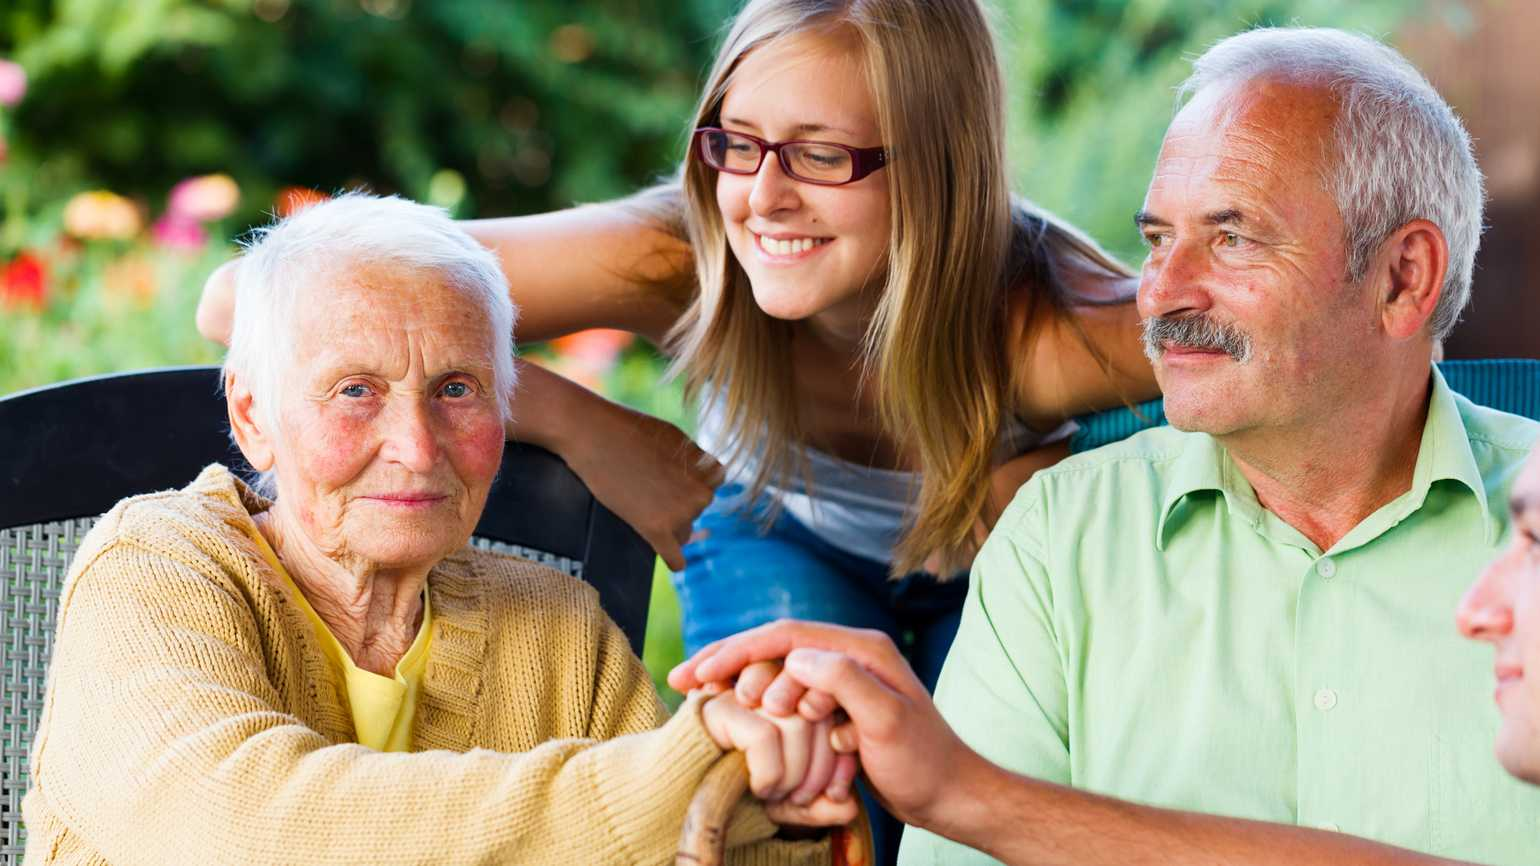 5 Tips to Make Home Safer for Families Who Live with Alzheimer's